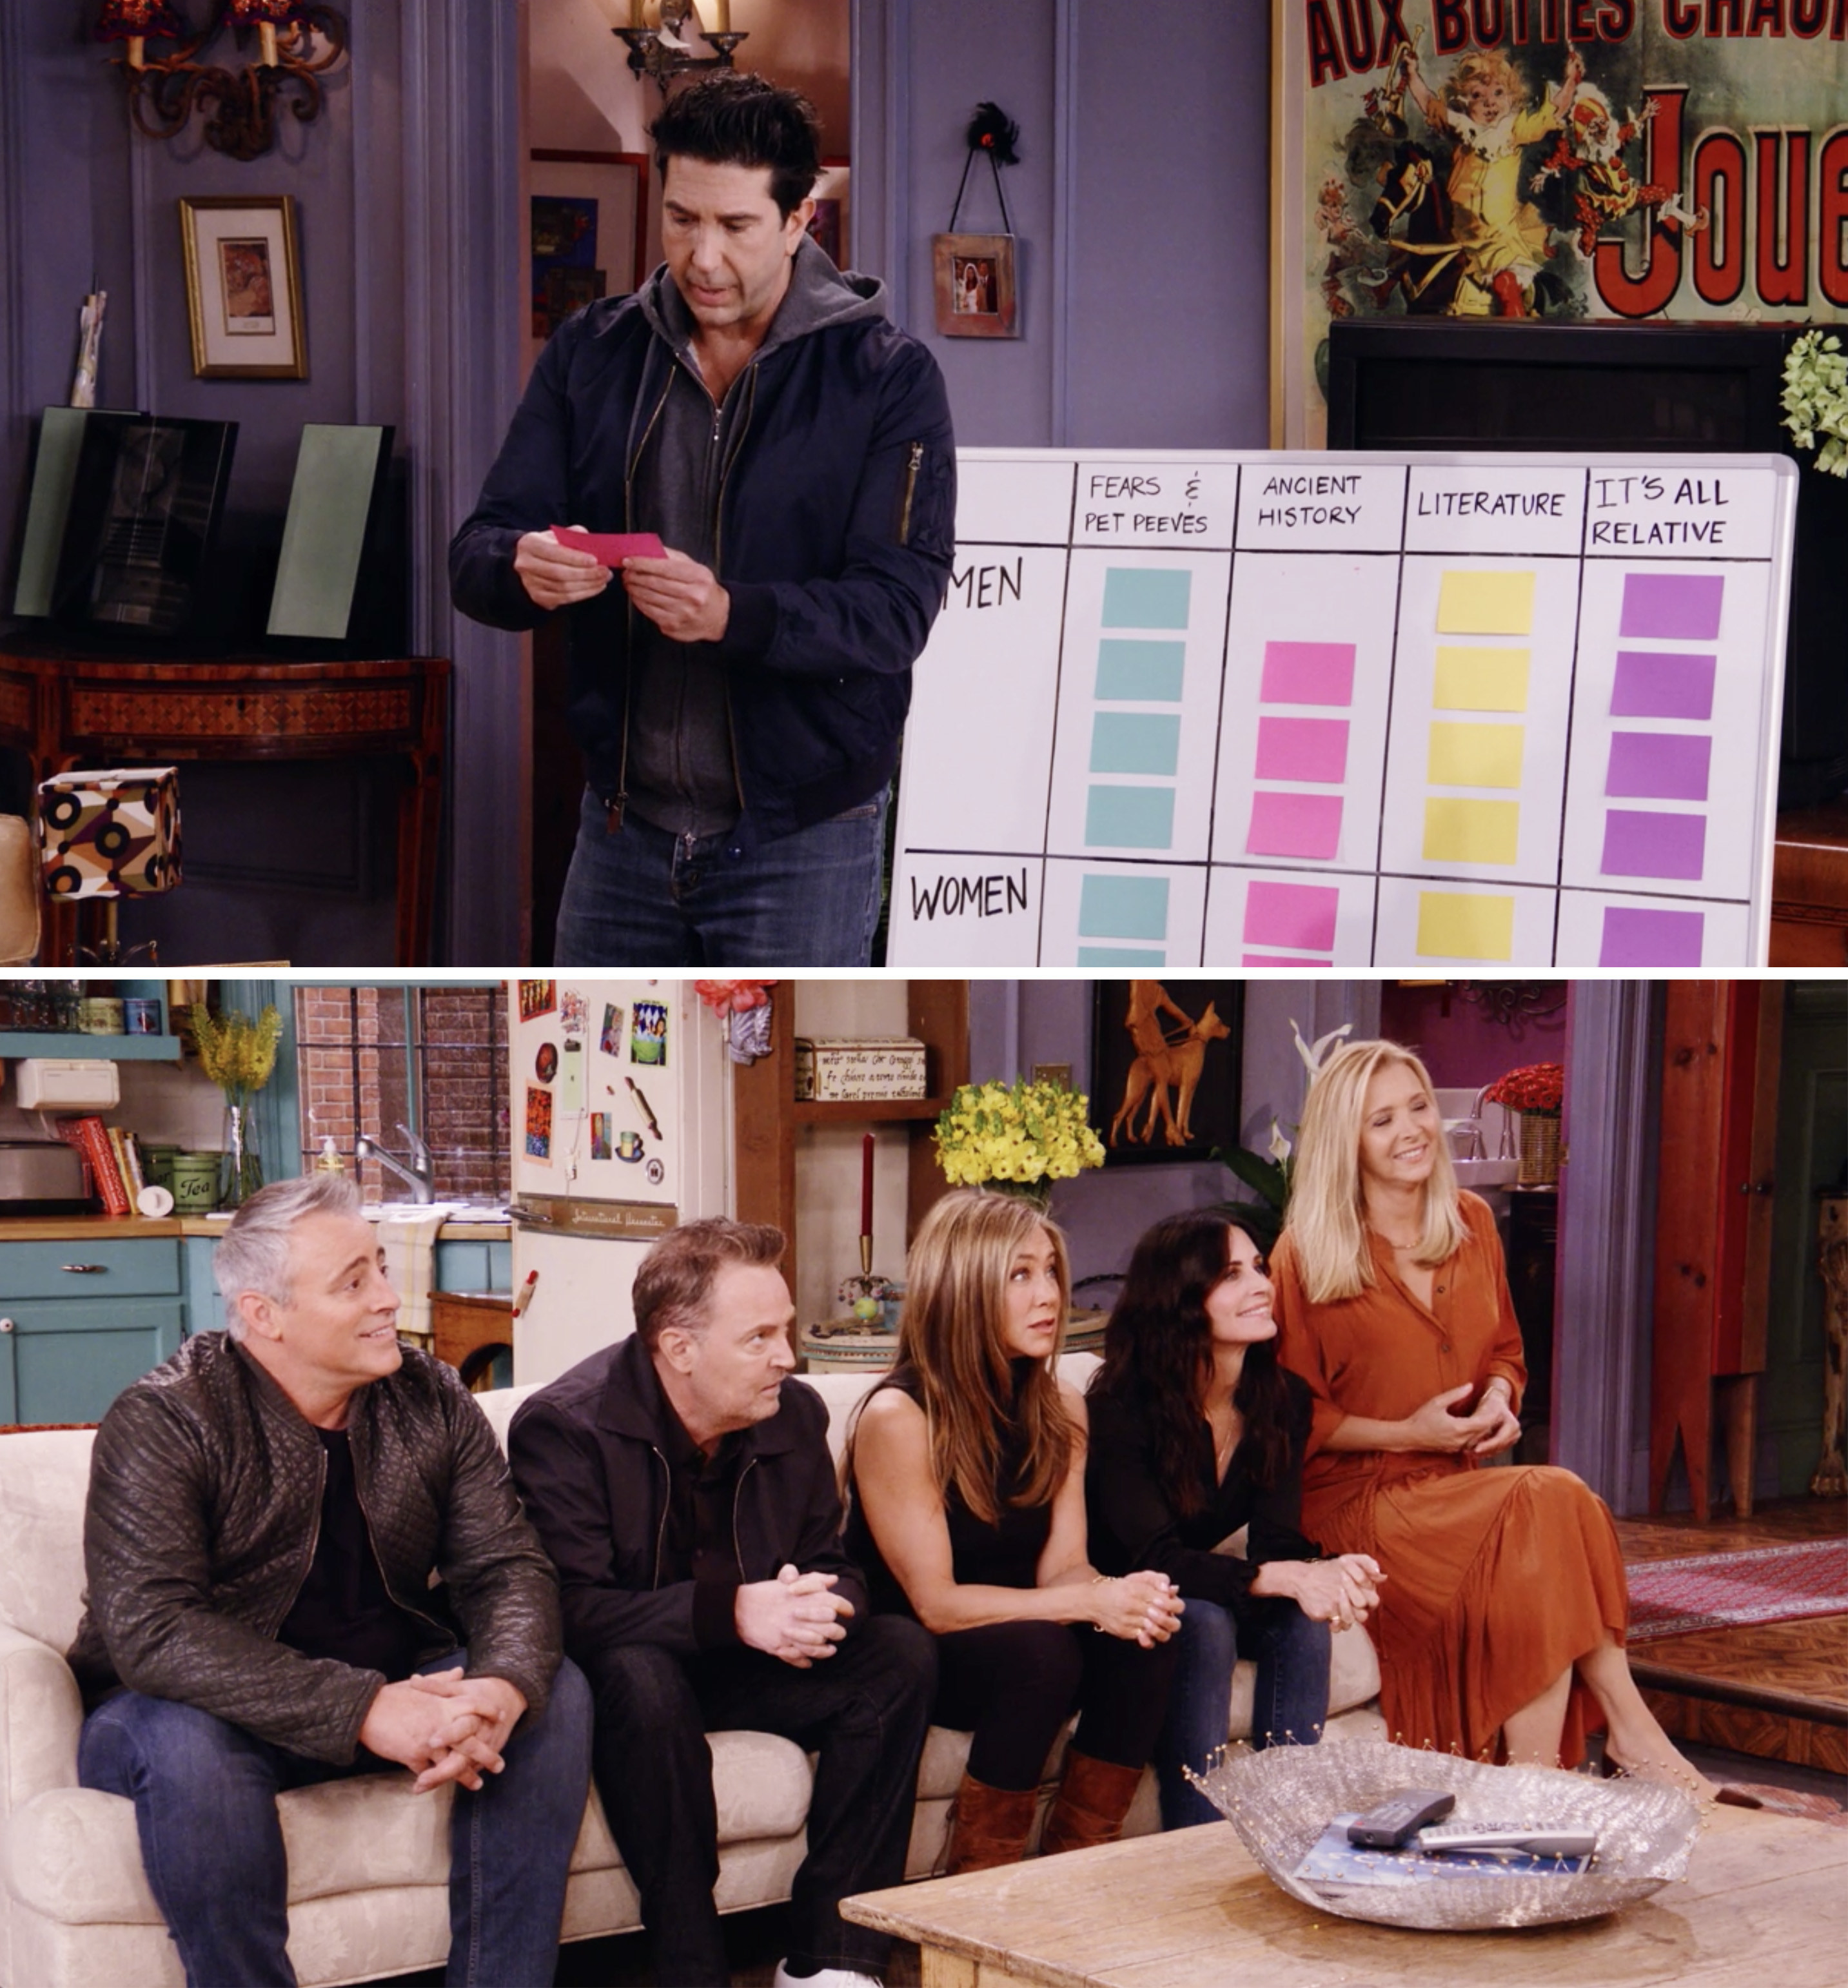 The cast of Friends playing the game for the apartment